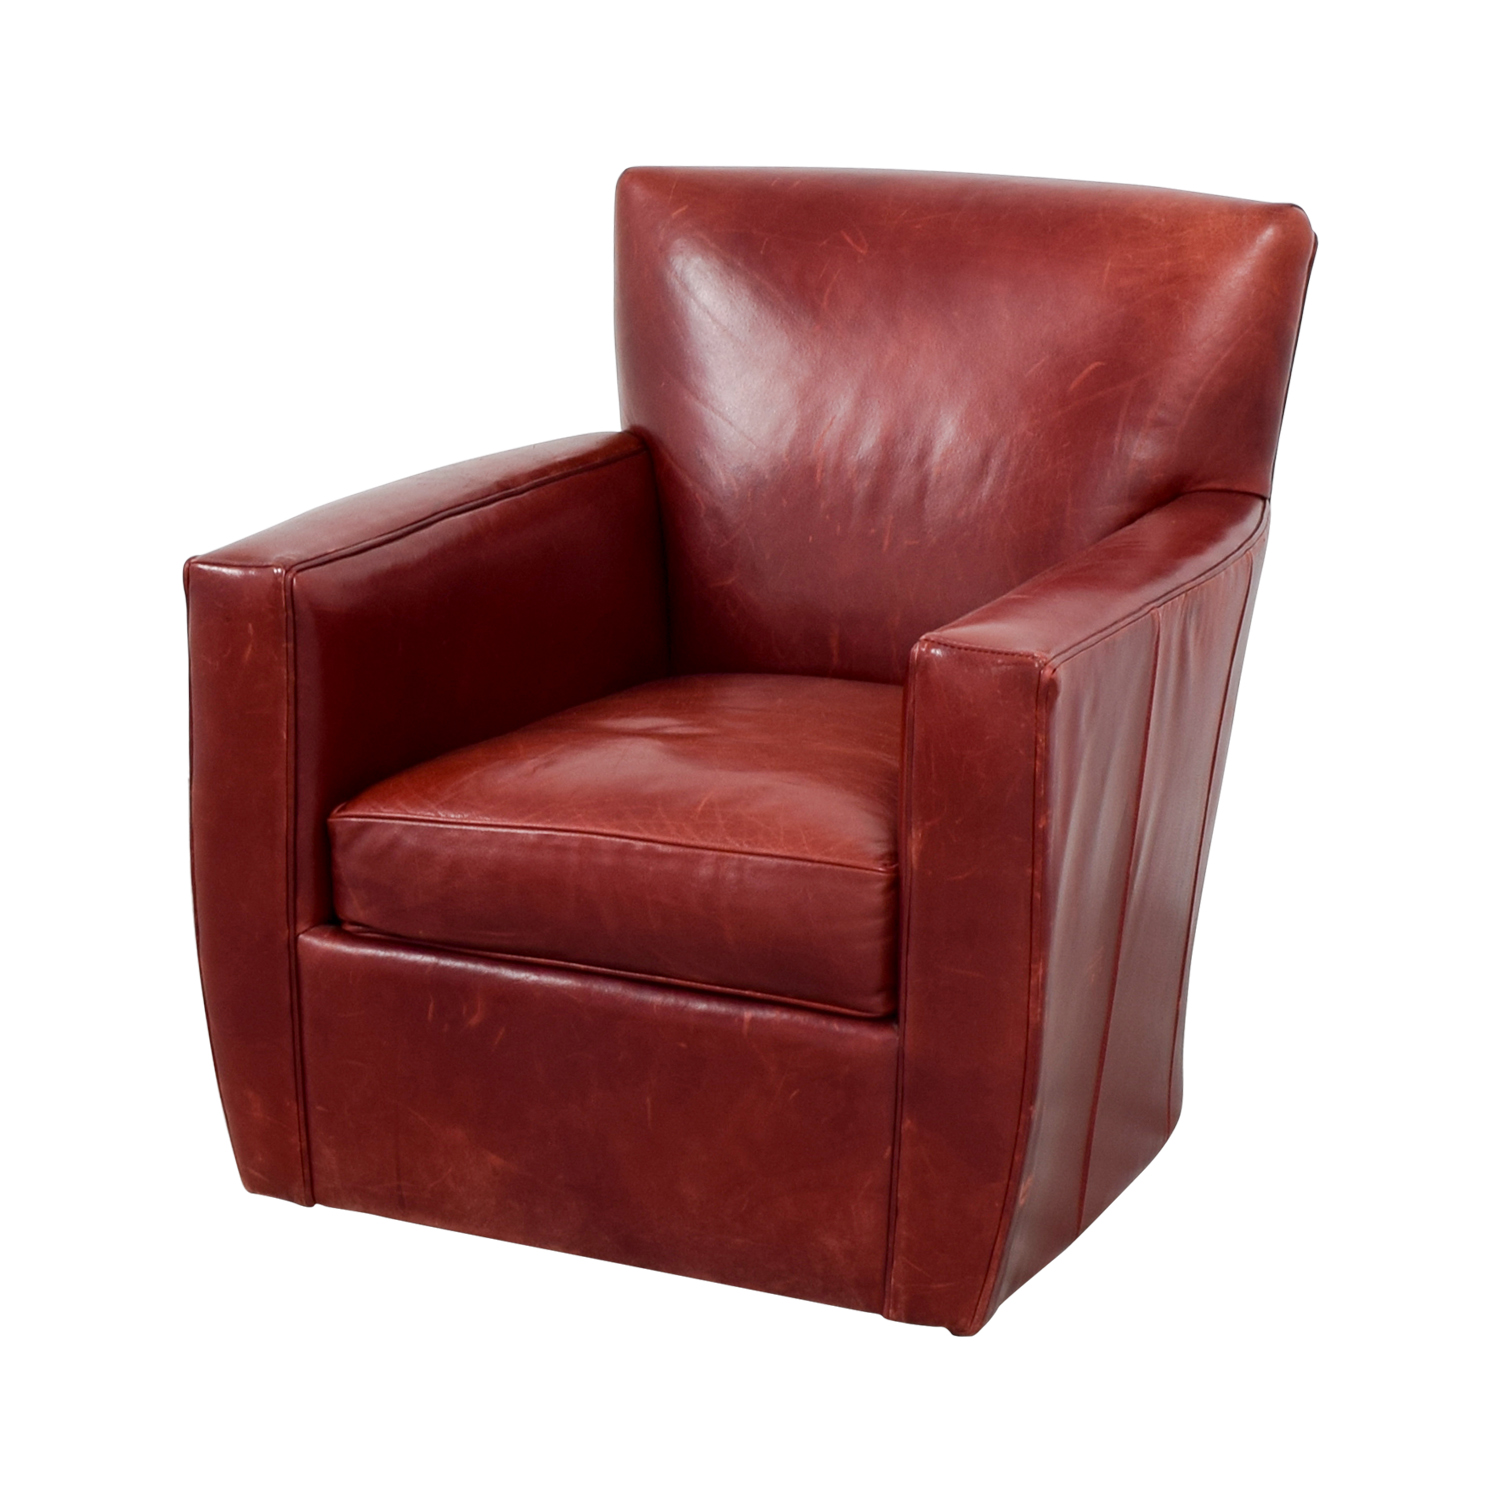 leather swivel chair covers ebay canada 79 off crate and barrel